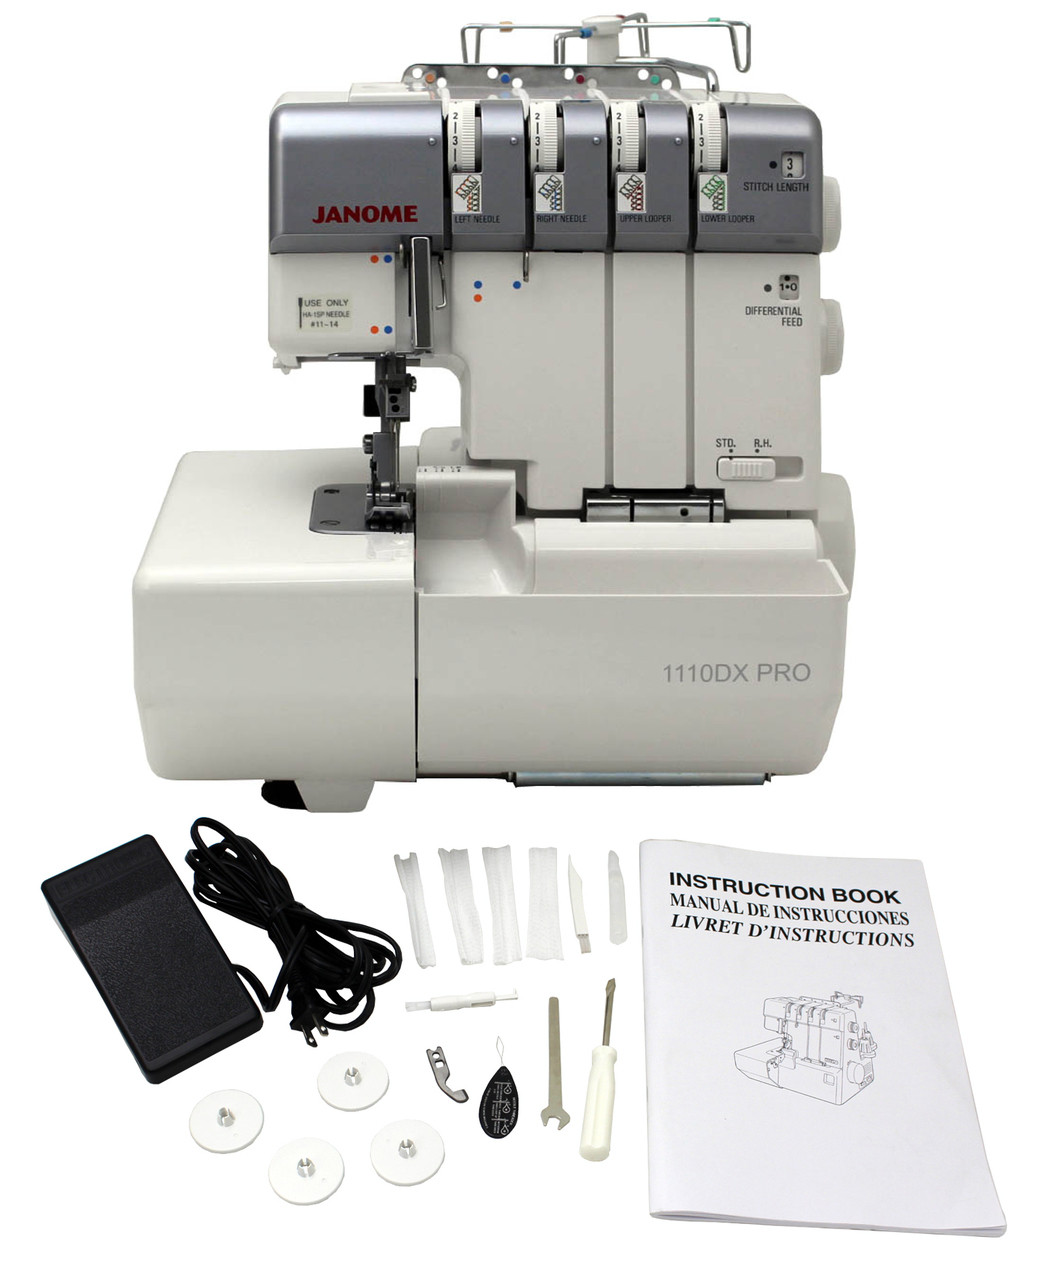 ... Janome 1110DX Pro My Lock Serger - Refurbished